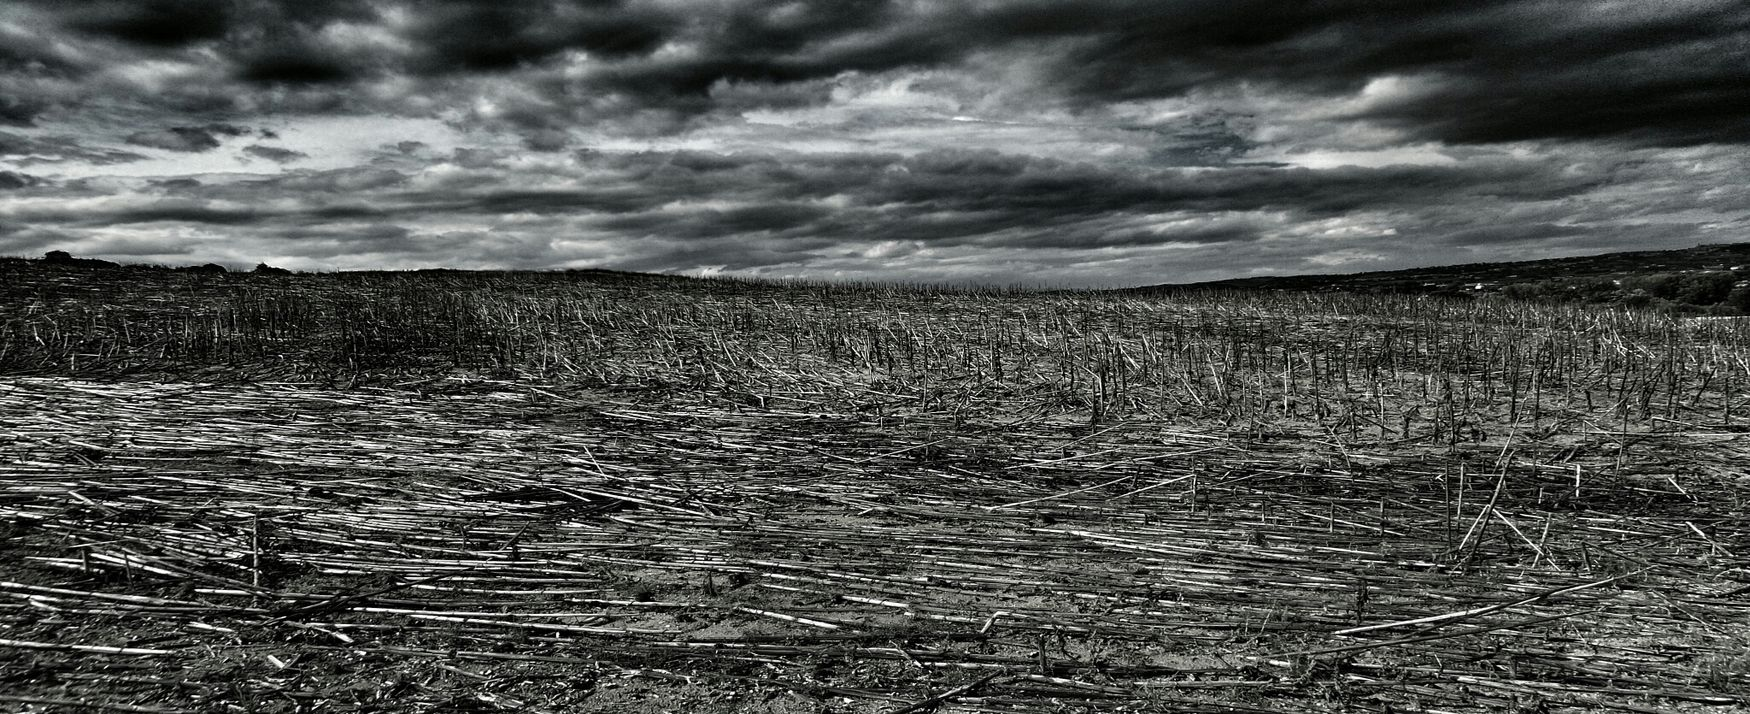 Desolate Landscape in Black And White